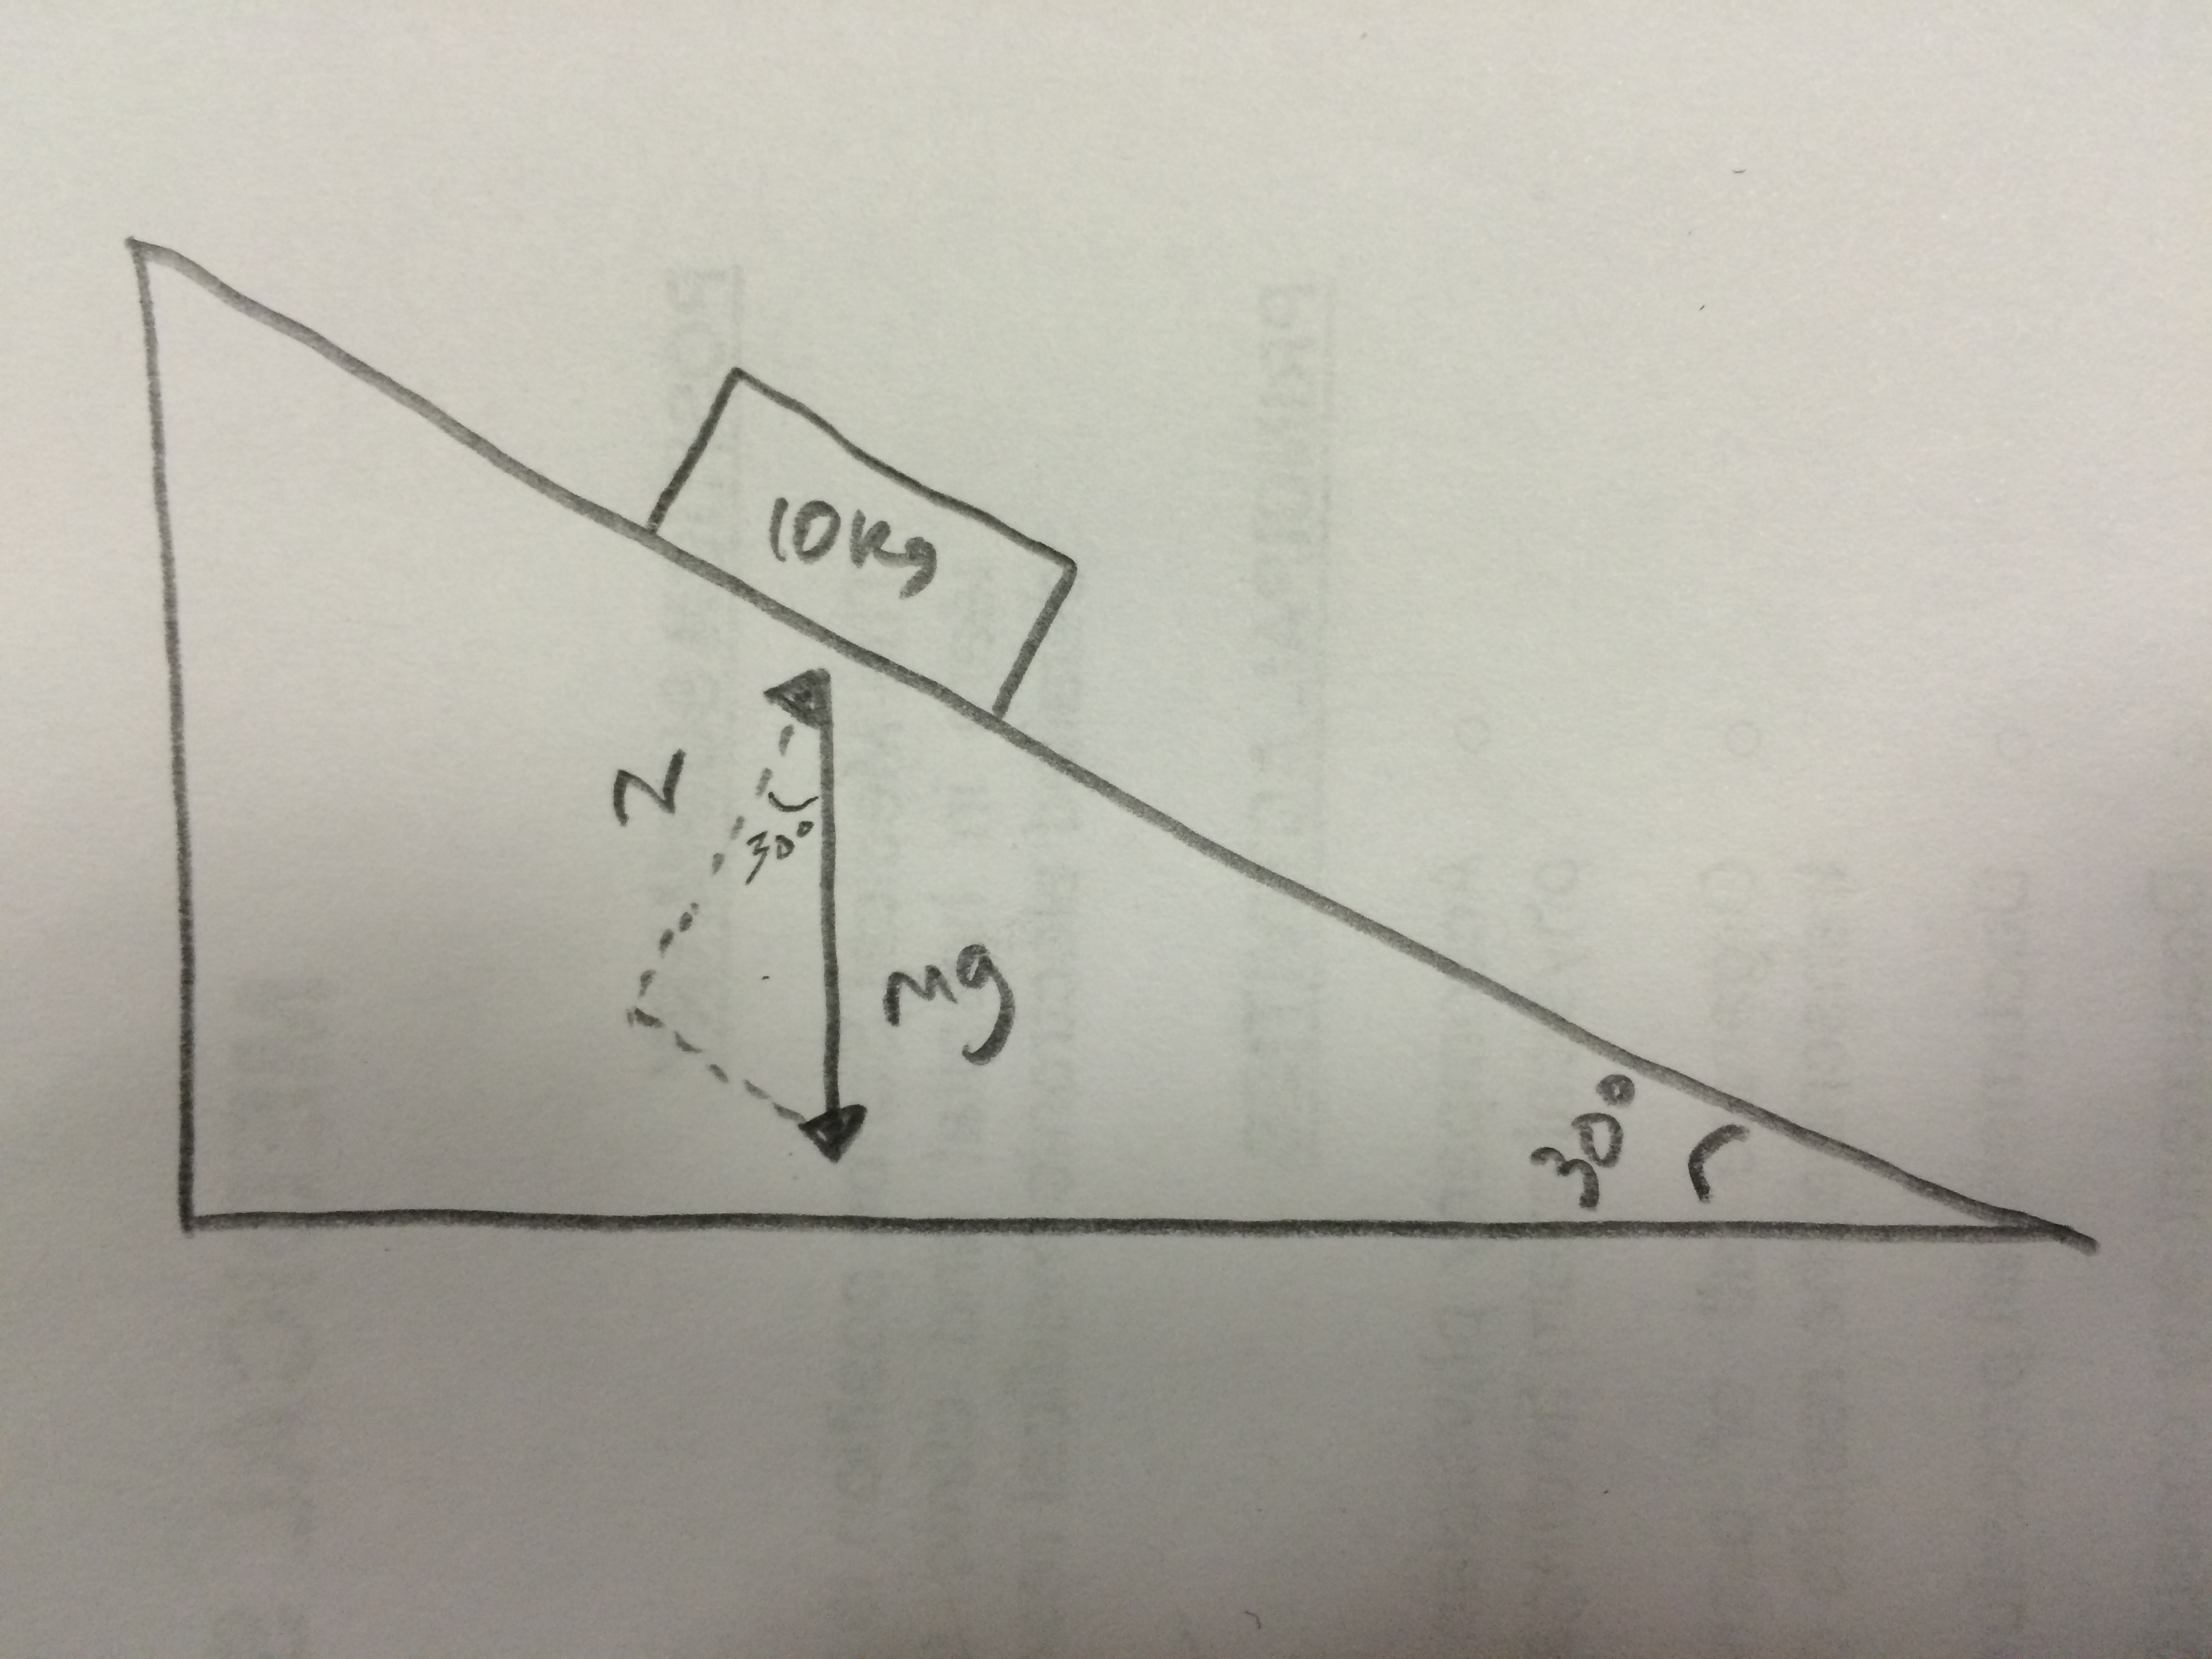 Normal Force And Weight Ap Physics 1 Drawing Body Diagrams The Free Diagram Of System Is Shown Below